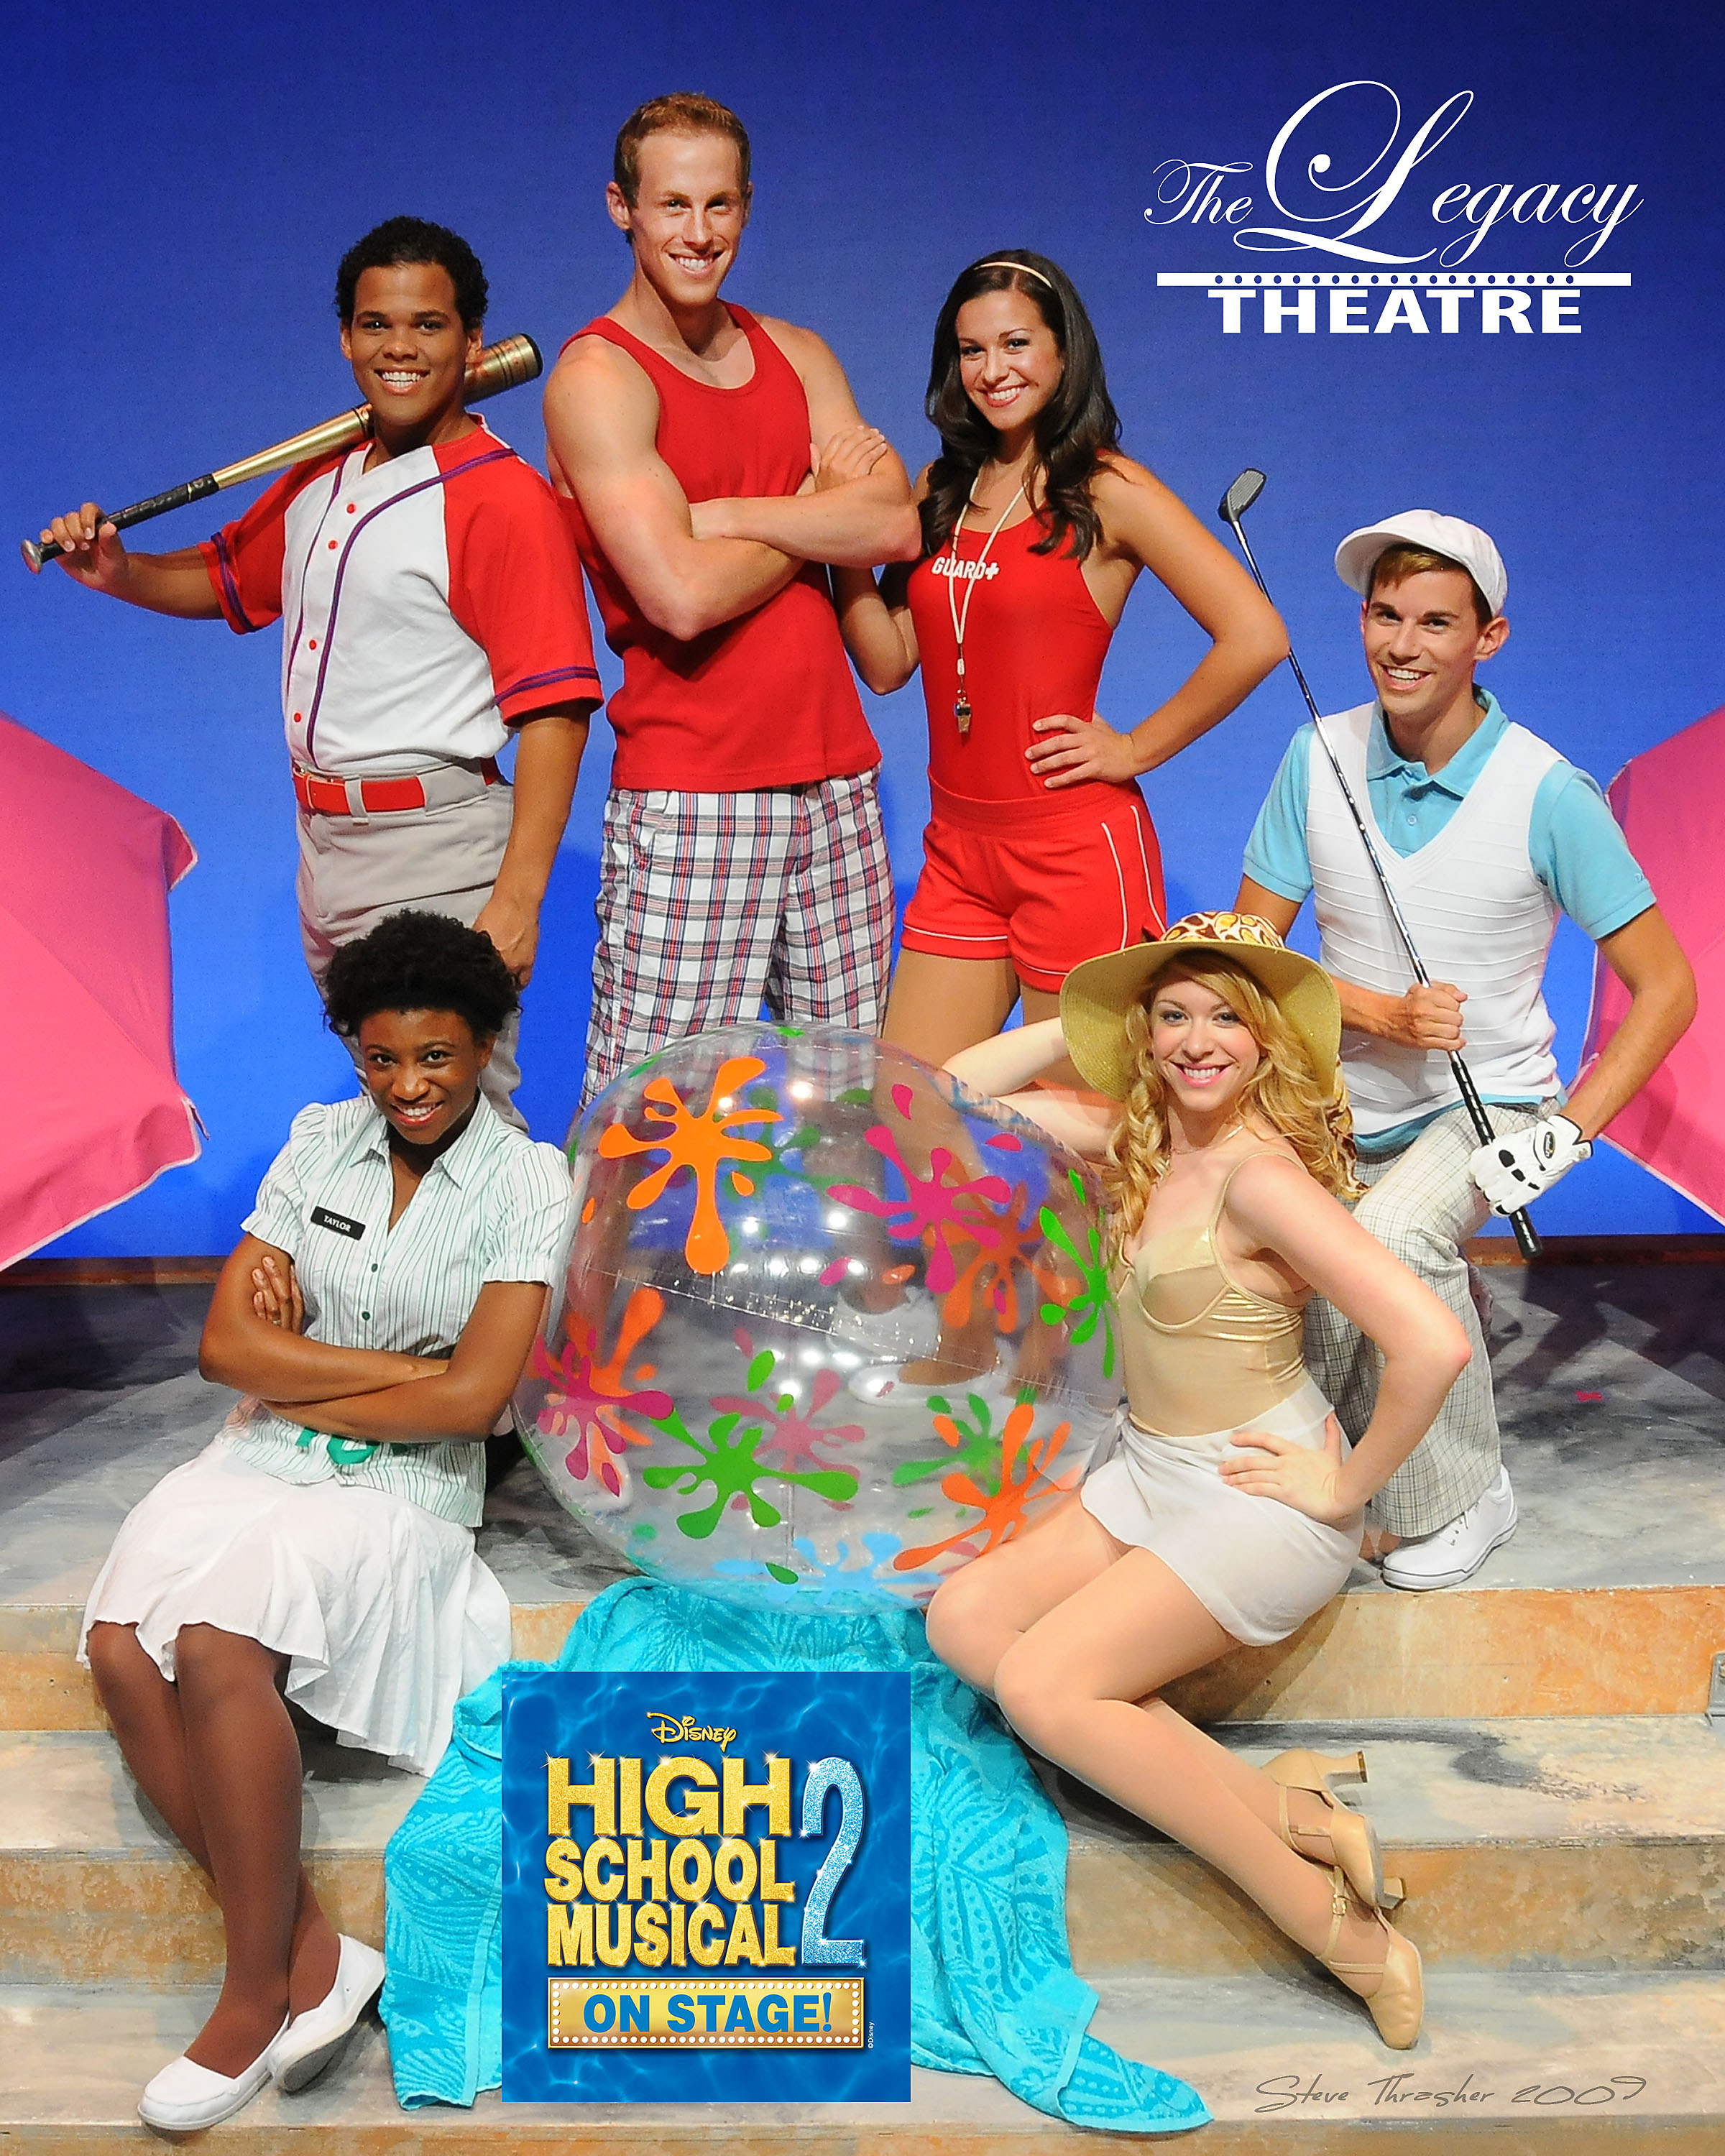 What Time is It? Time for the Legacy Theatre production of Disney's High School Musical 2!